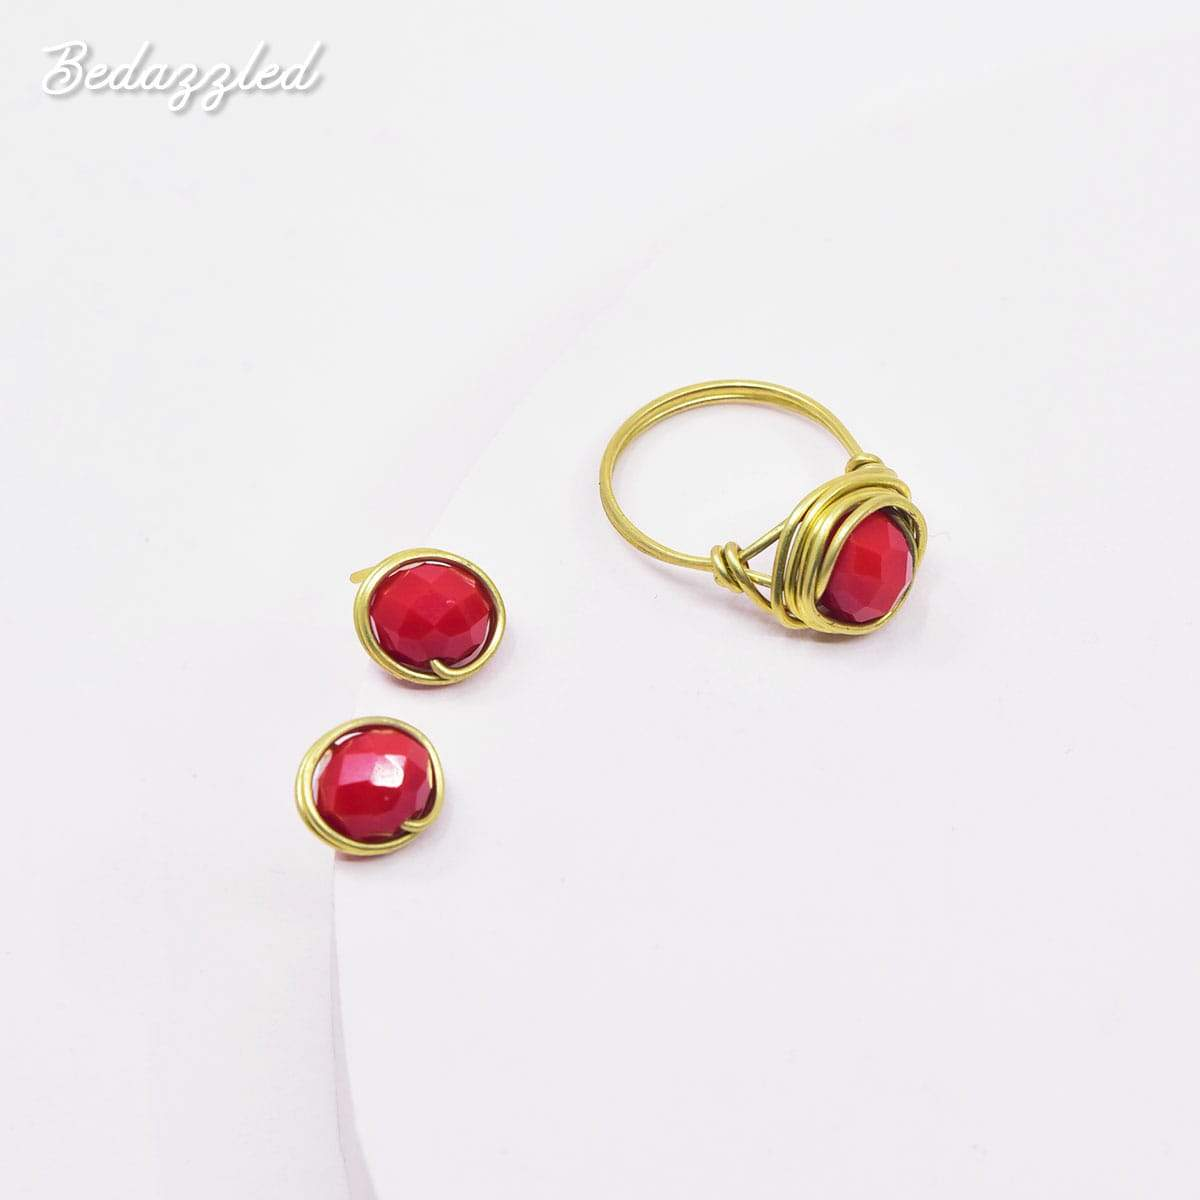 Bedazzling Red - Set of 2